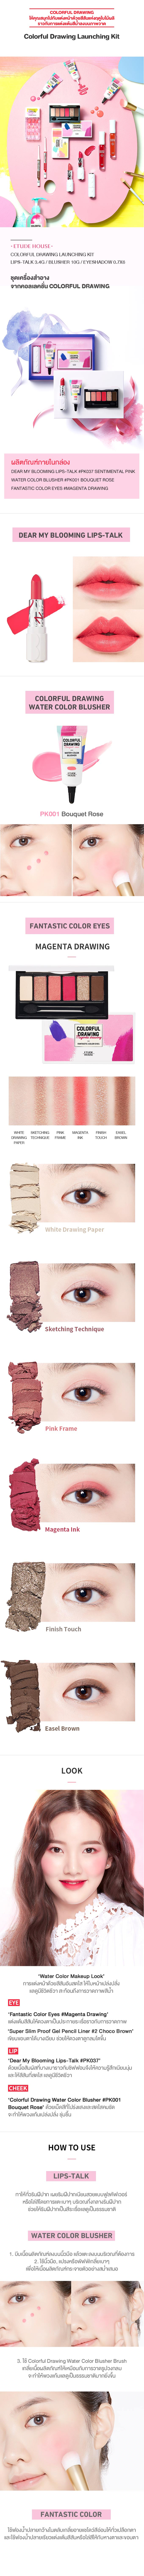 Colorful Drawing Launching Kit